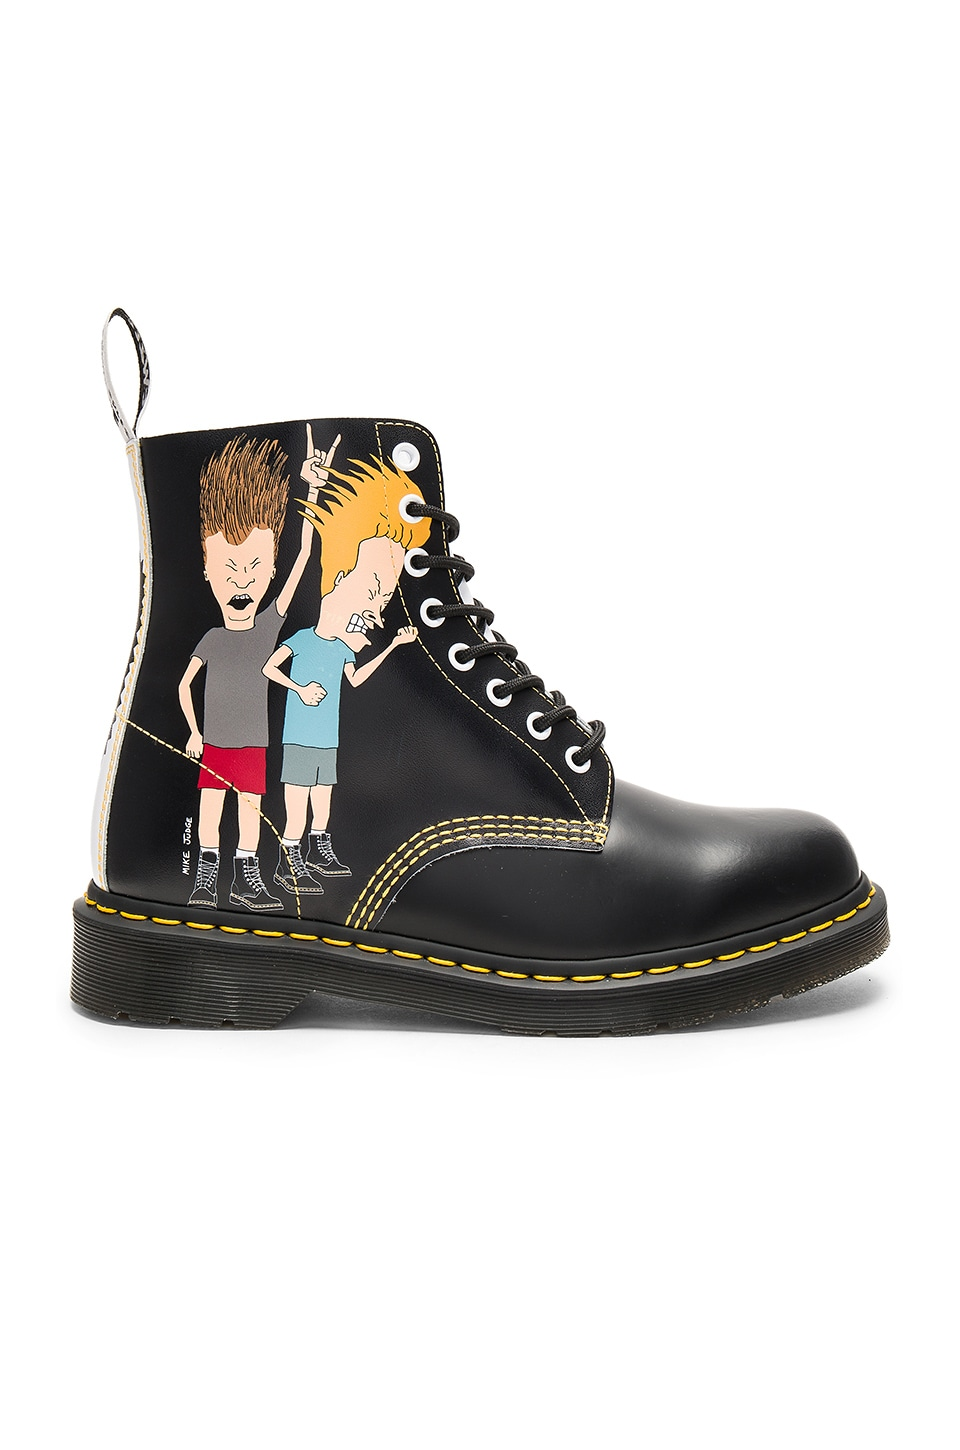 Dr. Martens Pascal 8 Eye Beavis & Butthead Boots in Black & White Print